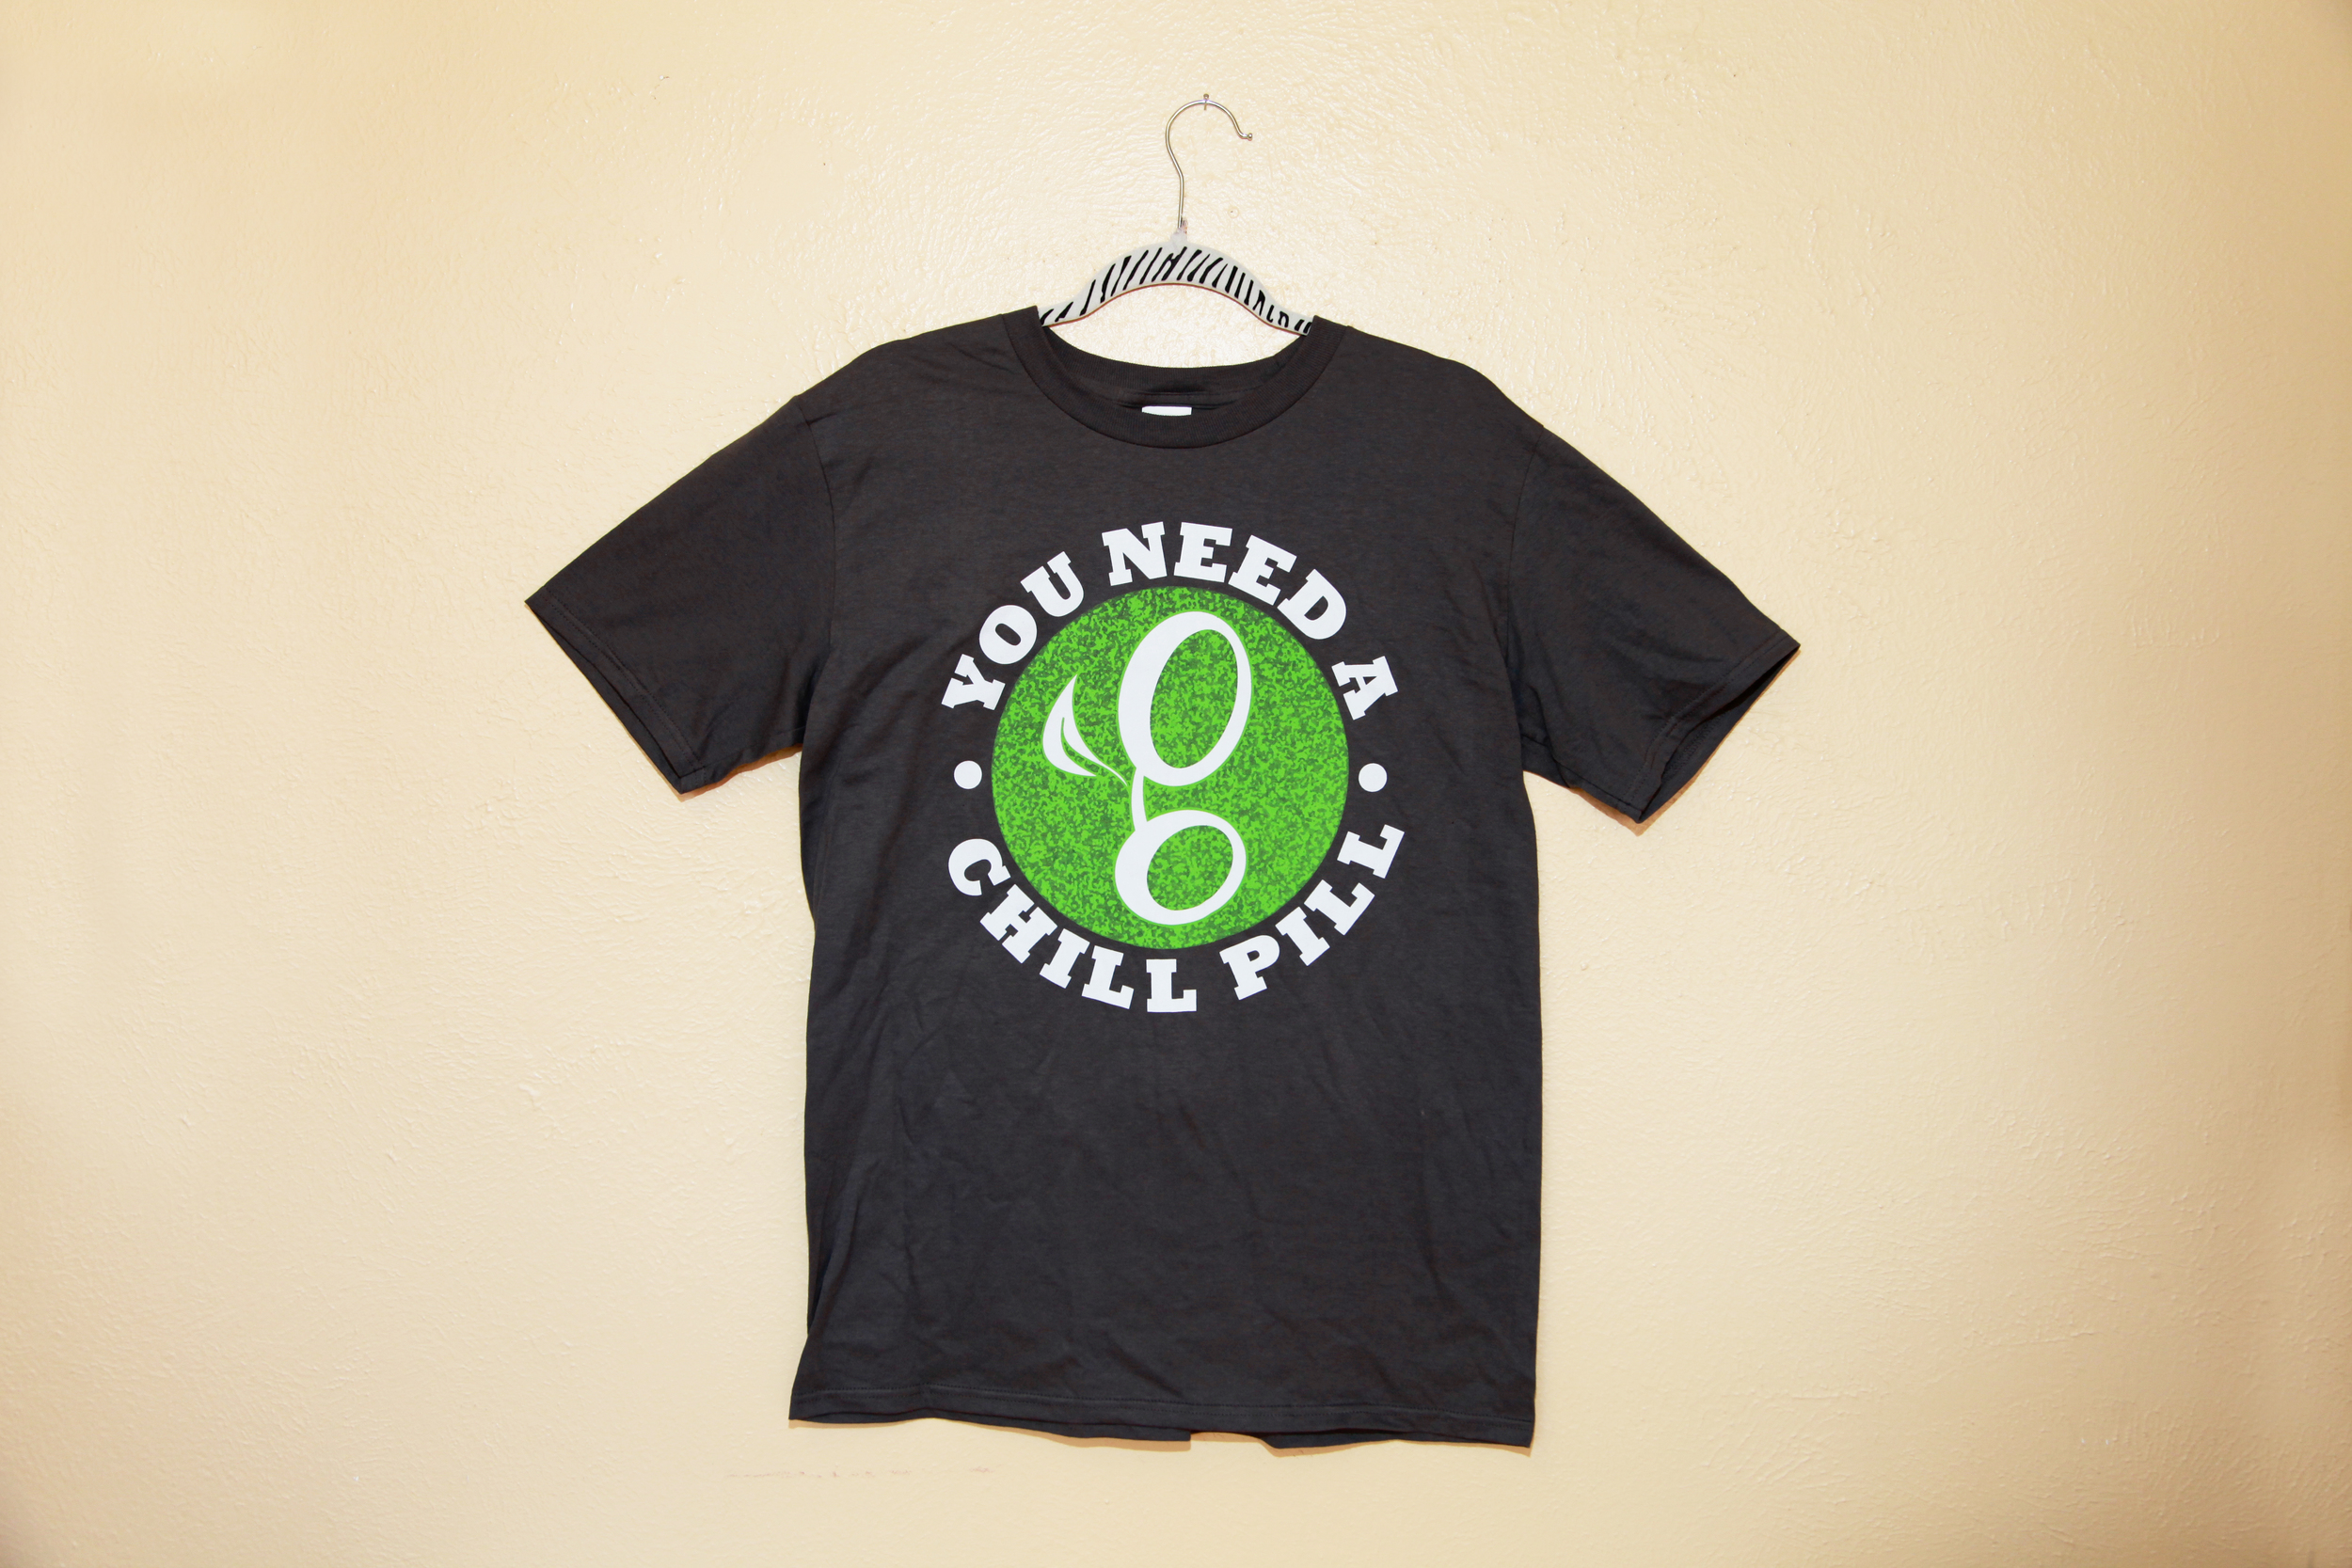 Chill Pill T-Shirt.jpg